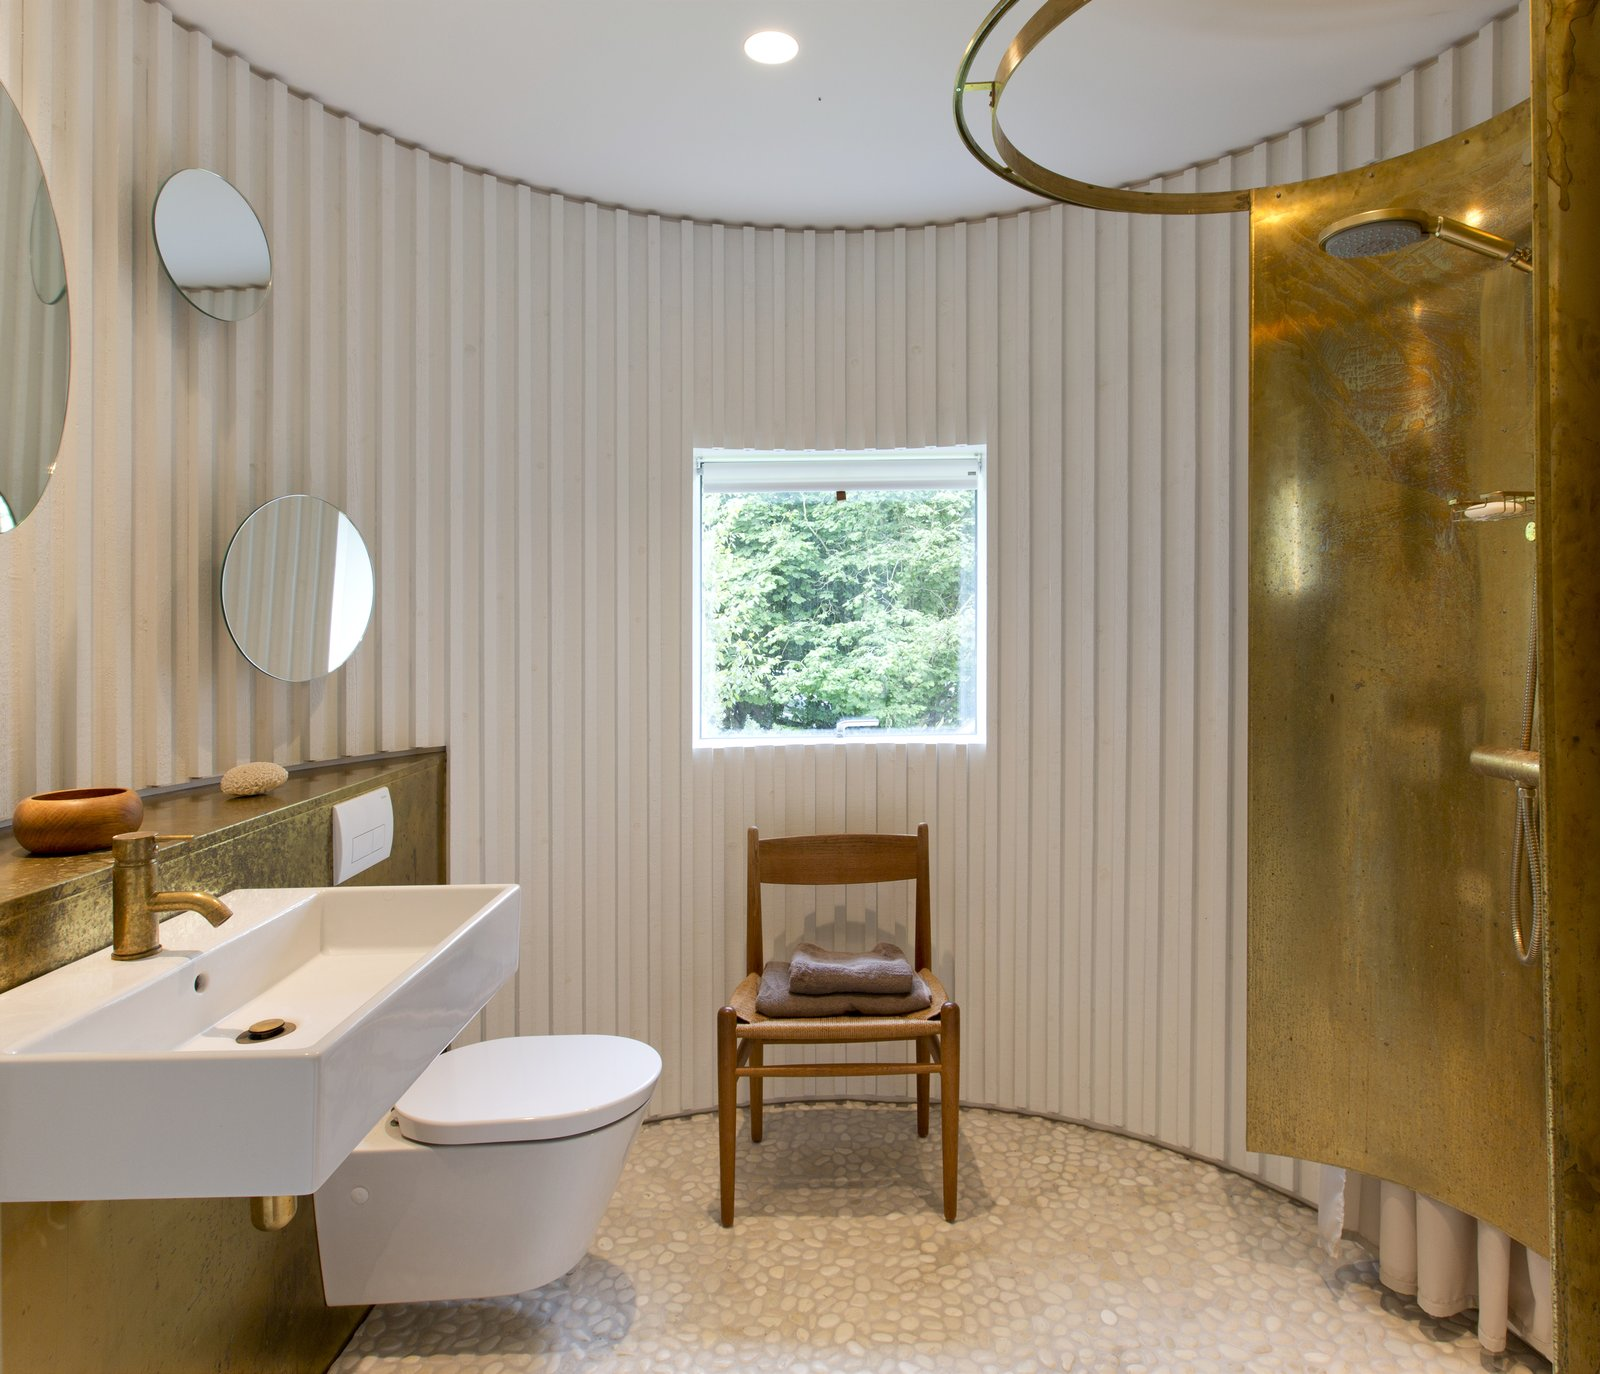 Bath, Metal, Wall Mount, Open, Recessed, and One Piece  Bath One Piece Recessed Metal Photos from Stay in This Danish Vacation Home Made Up of 9 Log-Clad Cylinders